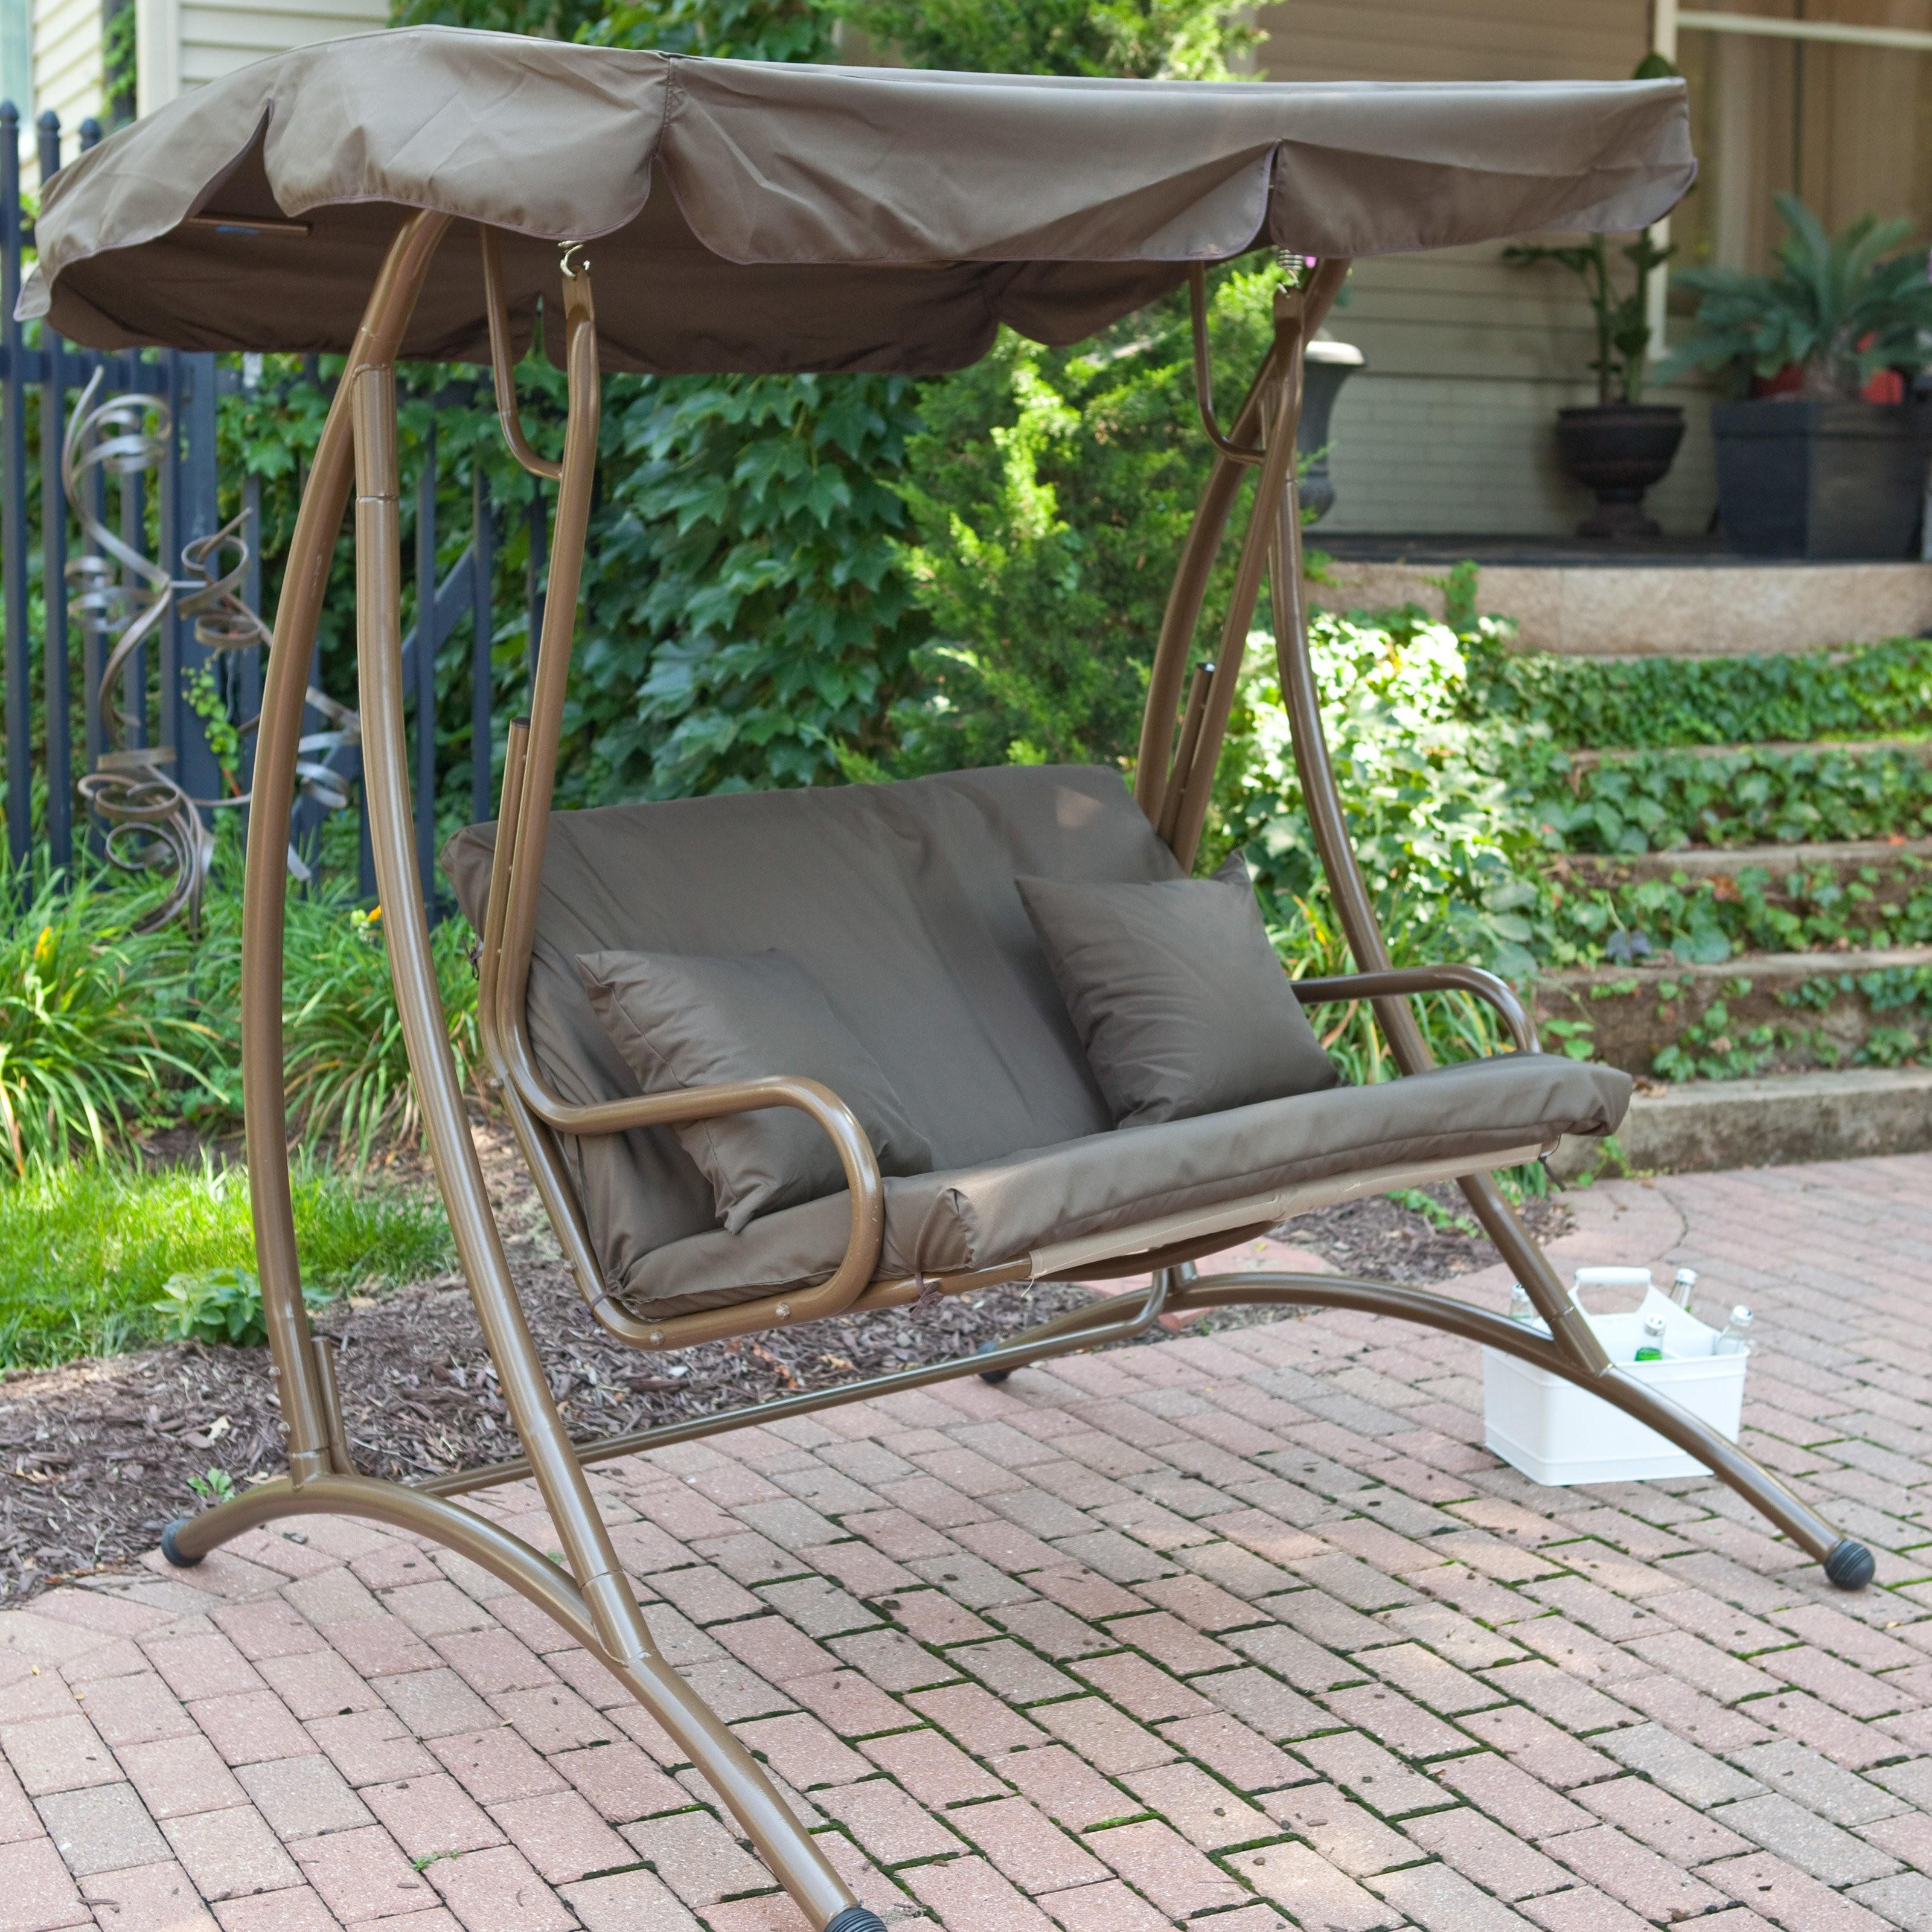 Person Patio Swing Canopy 2017 2018 Best Cars